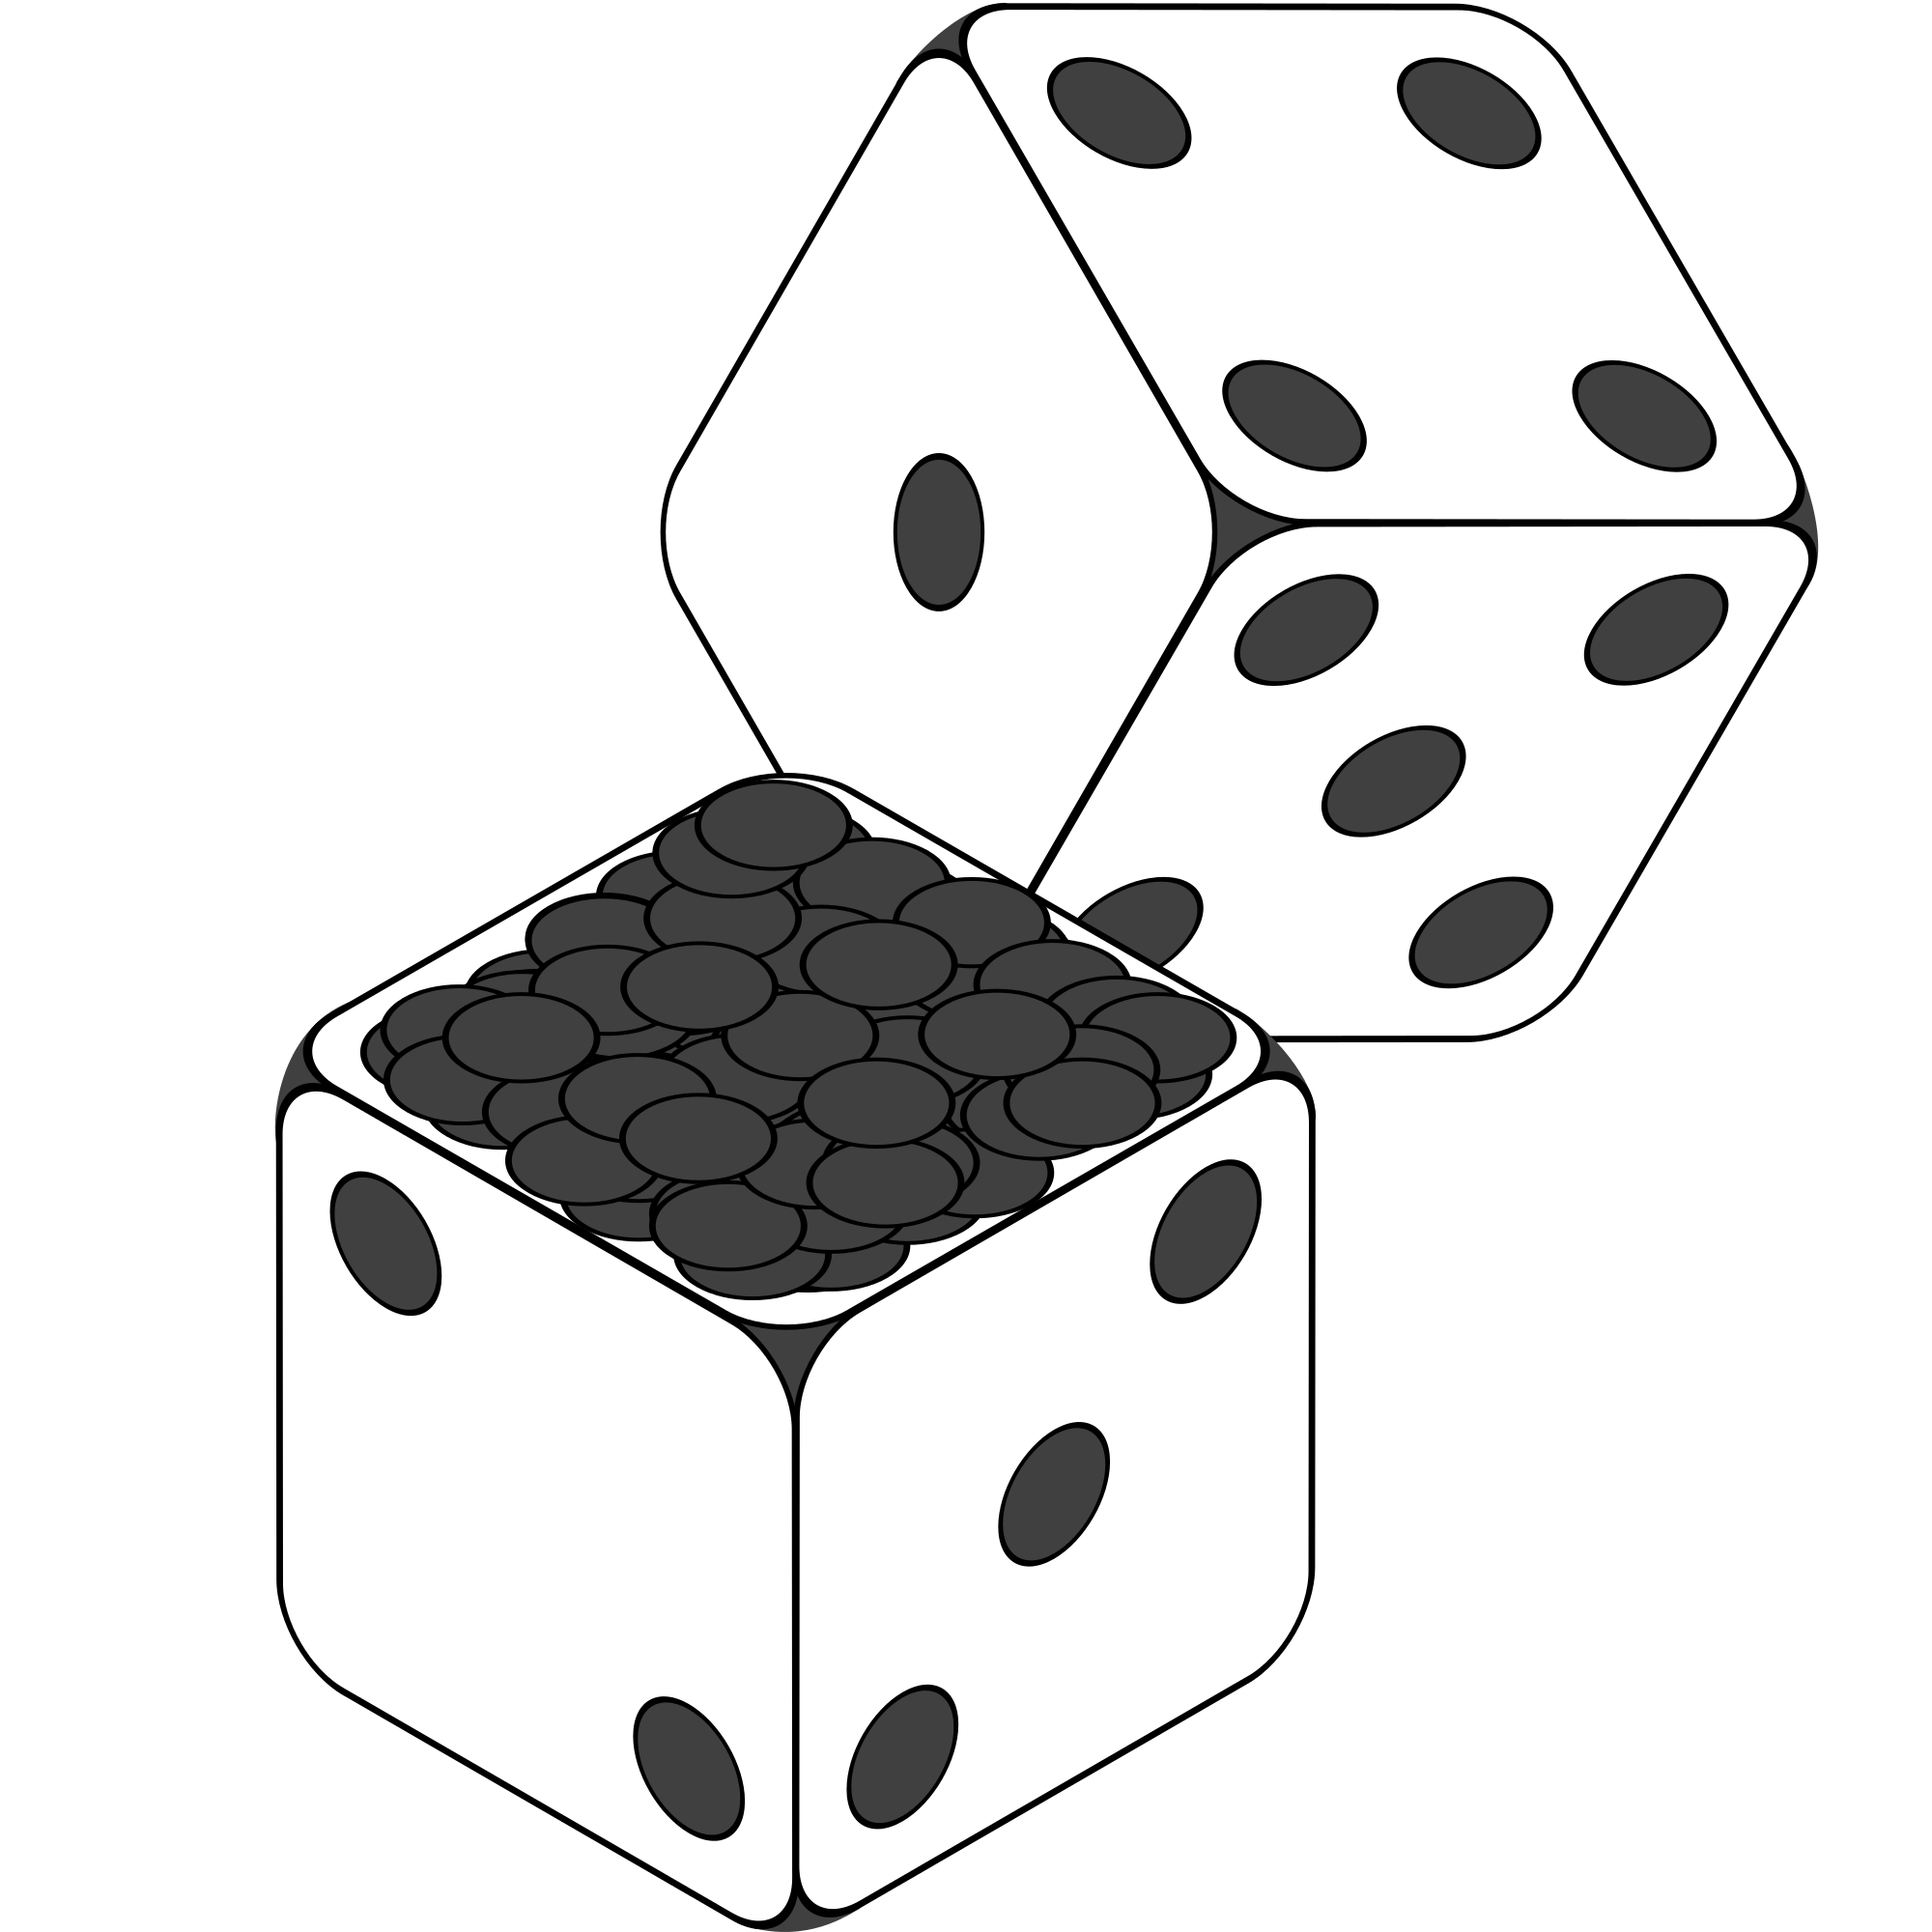 File:2-Dice-Icon Black Swan.svg - Wikimedia Commons